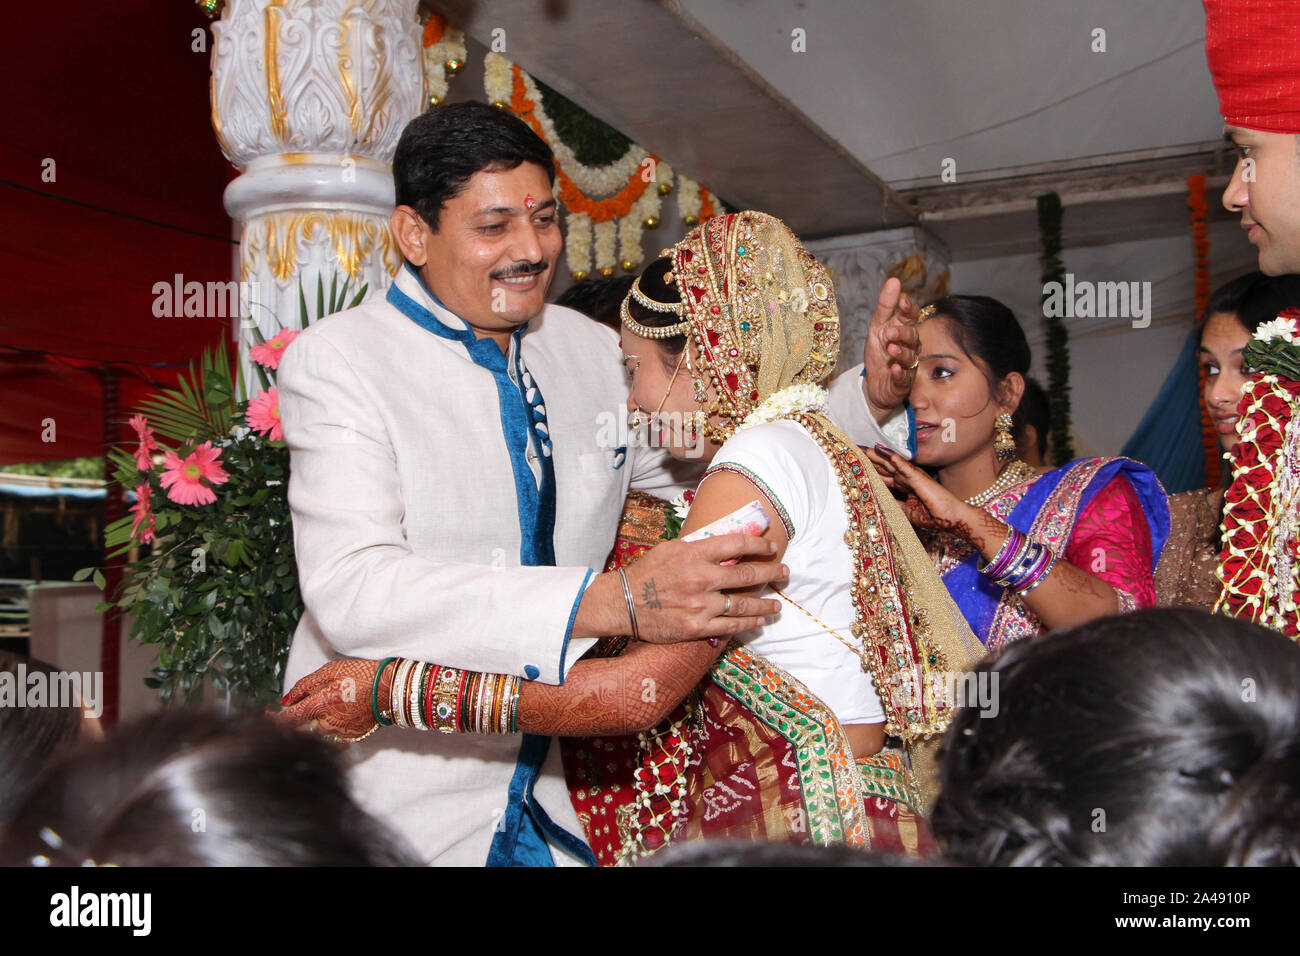 Amreli; Gujarat; India -Asia ; The Emotions of Father and Daughter are Totally Different Bidaai/viday Ceremony In Traditional Indian Hindu Wedding. Stock Photo